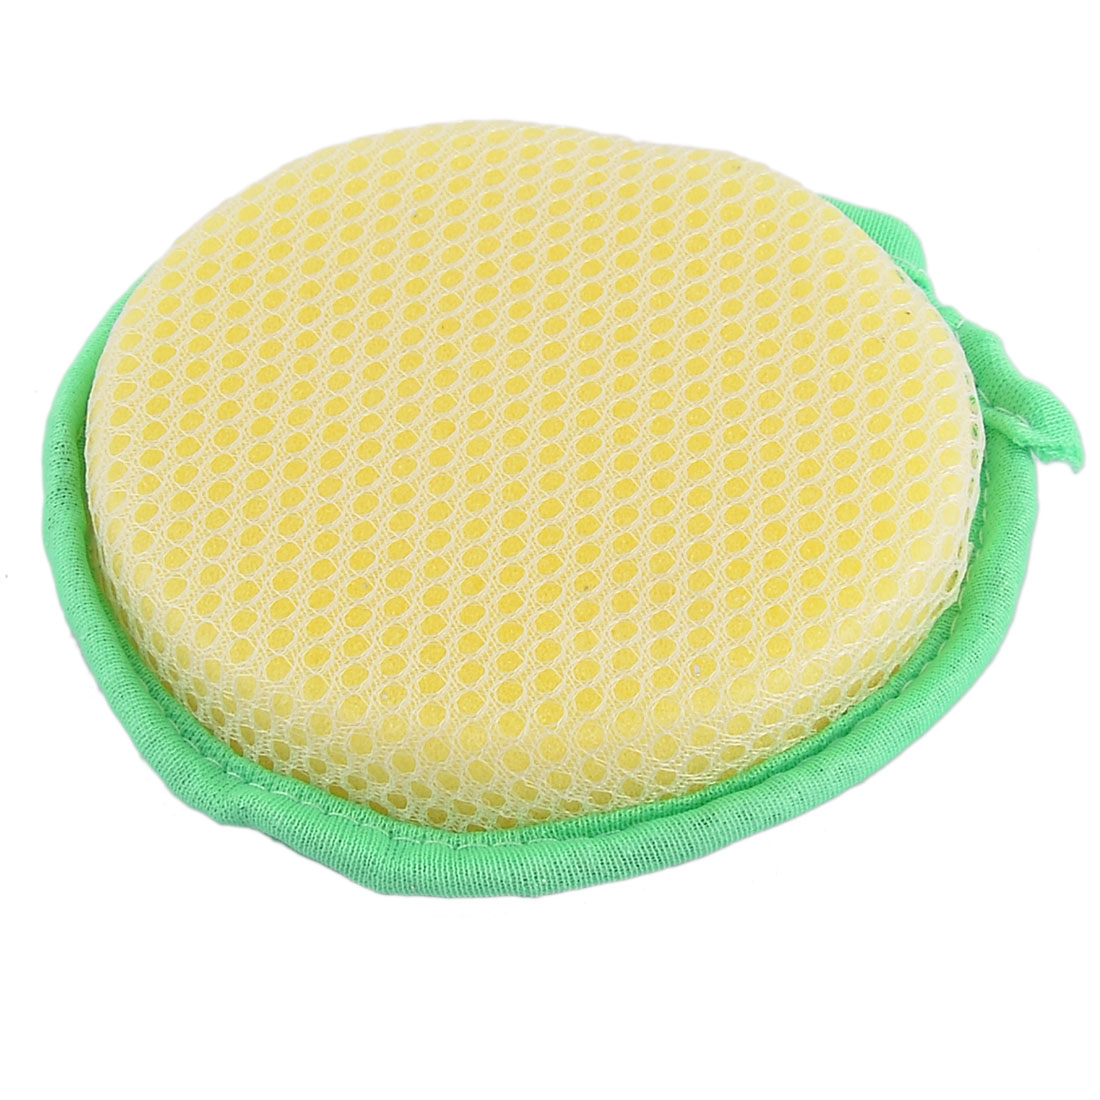 Metallic Thread Scrub Sponge Cleaning Pad Double Sides Dish Pot Cleaner Green